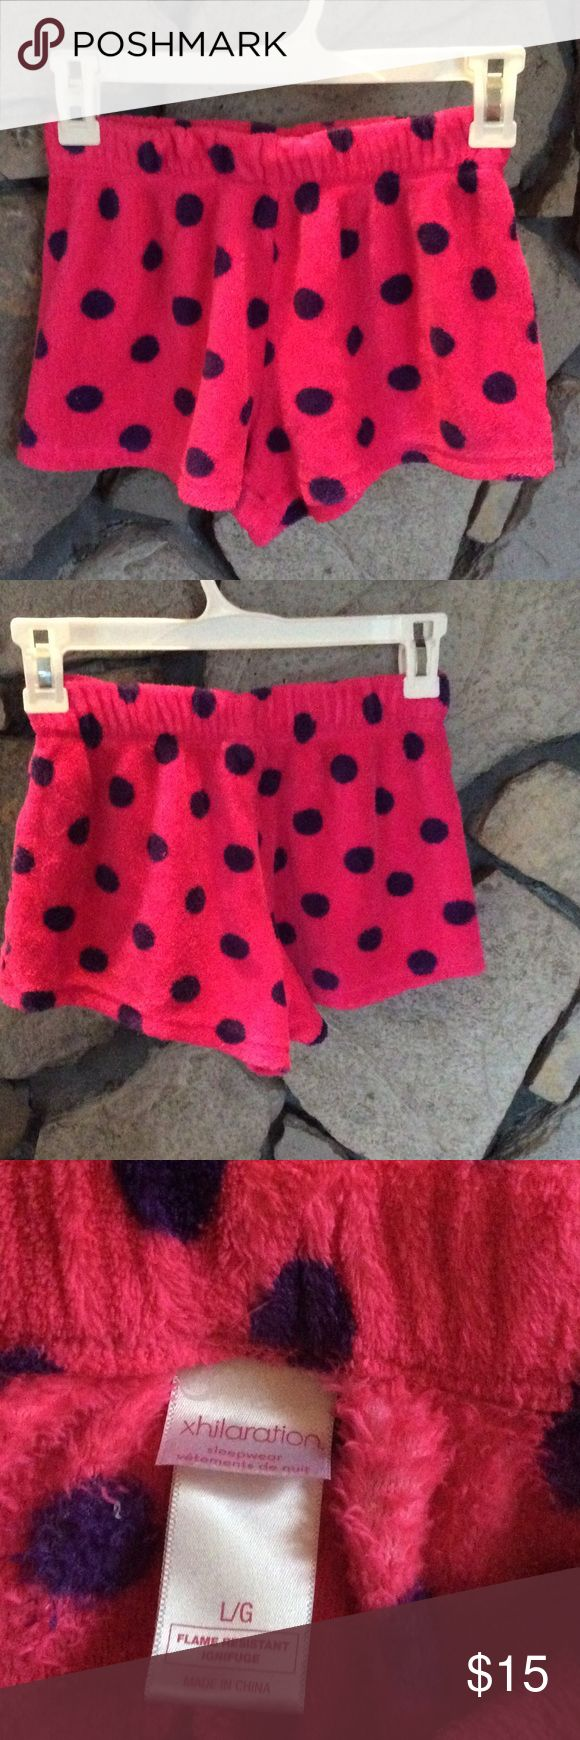 Polka dot print fleece shorts Very soft fleece polka dot print shorts.. hot pink with dark purple dots. Great for lounging around in or as sleepwear.  Great condition. Xhilaration Shorts